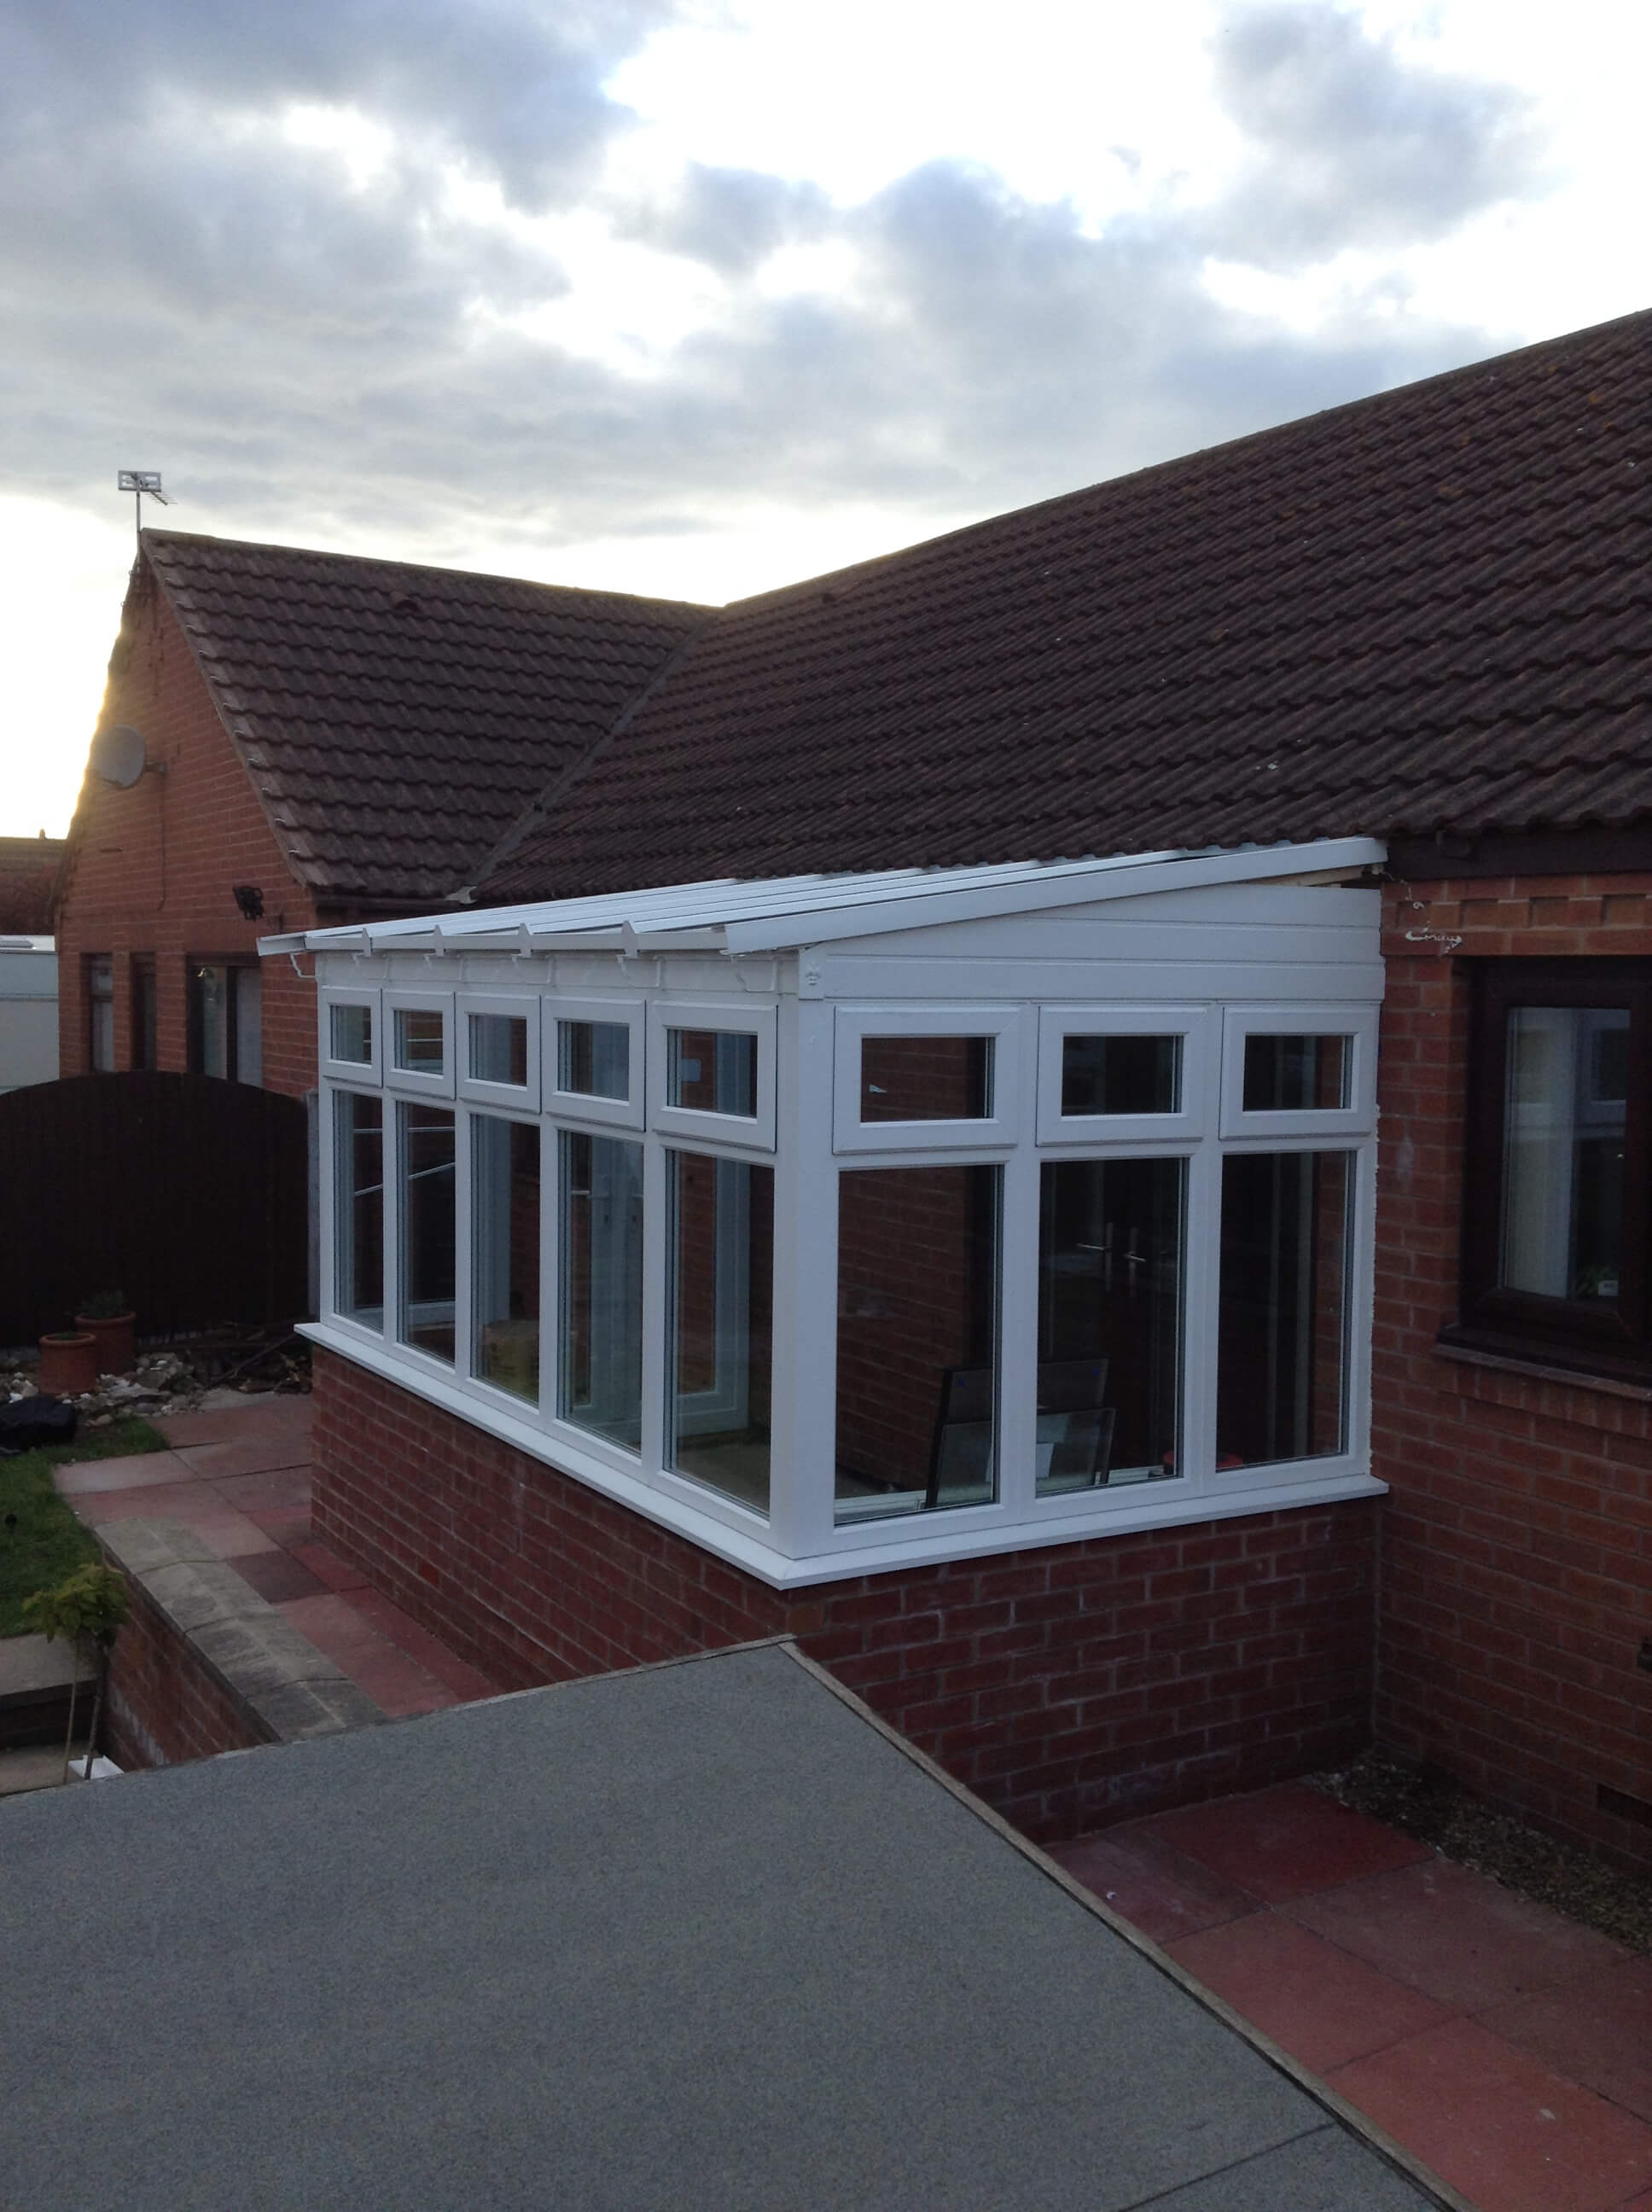 Newly built extension